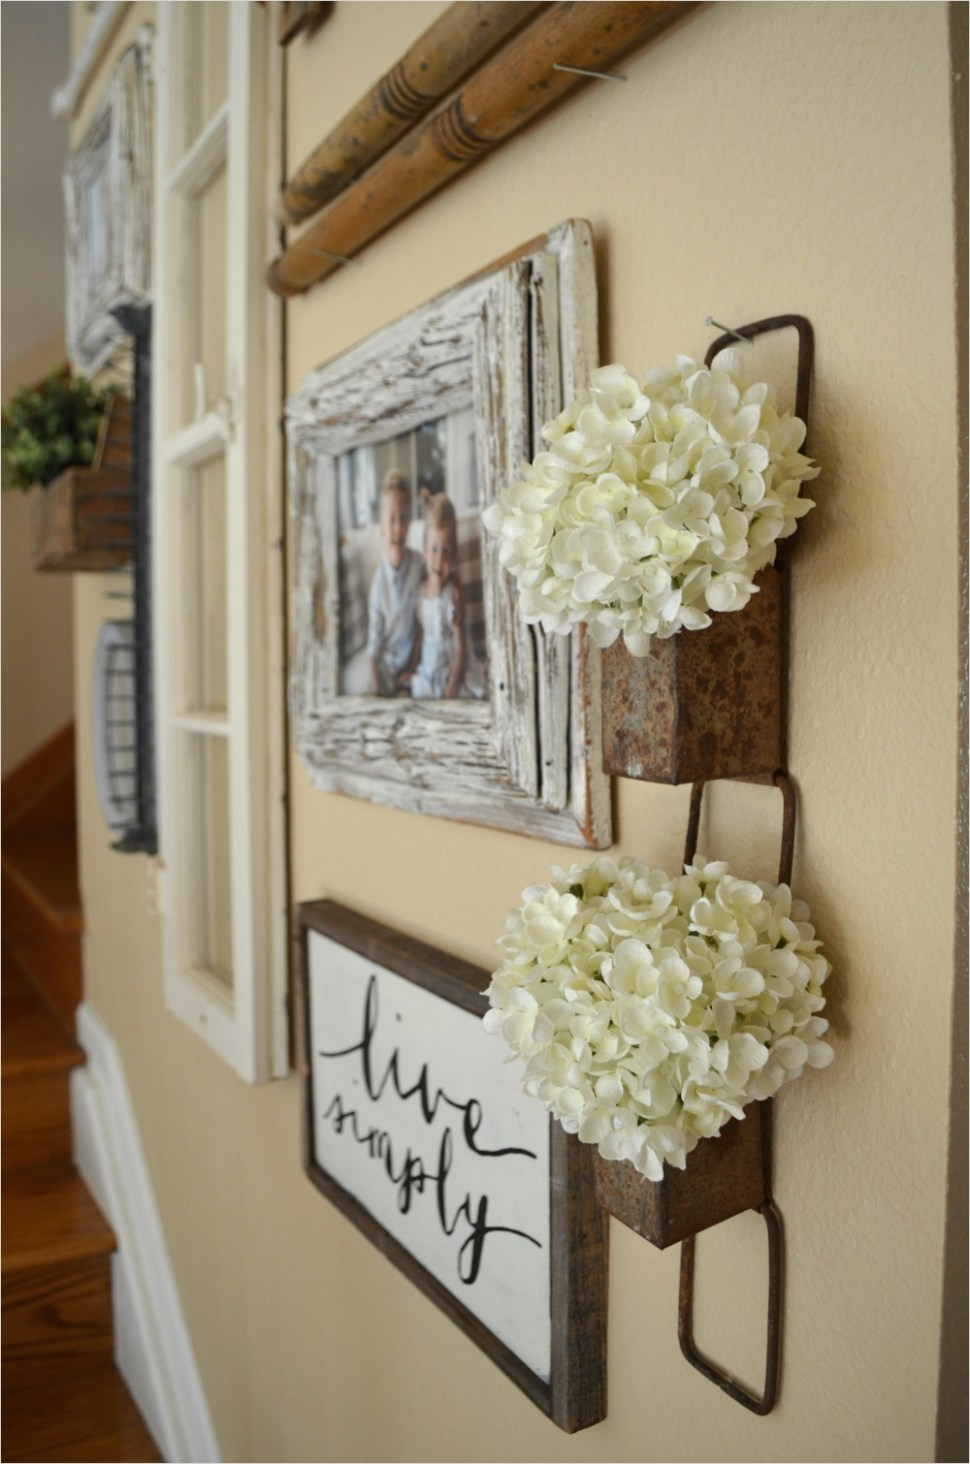 39 Stunning Farmhouse Hallway Decorating Ideas 43 Staircase Gallery Wall & A Collection Of Vintage Treasures 3